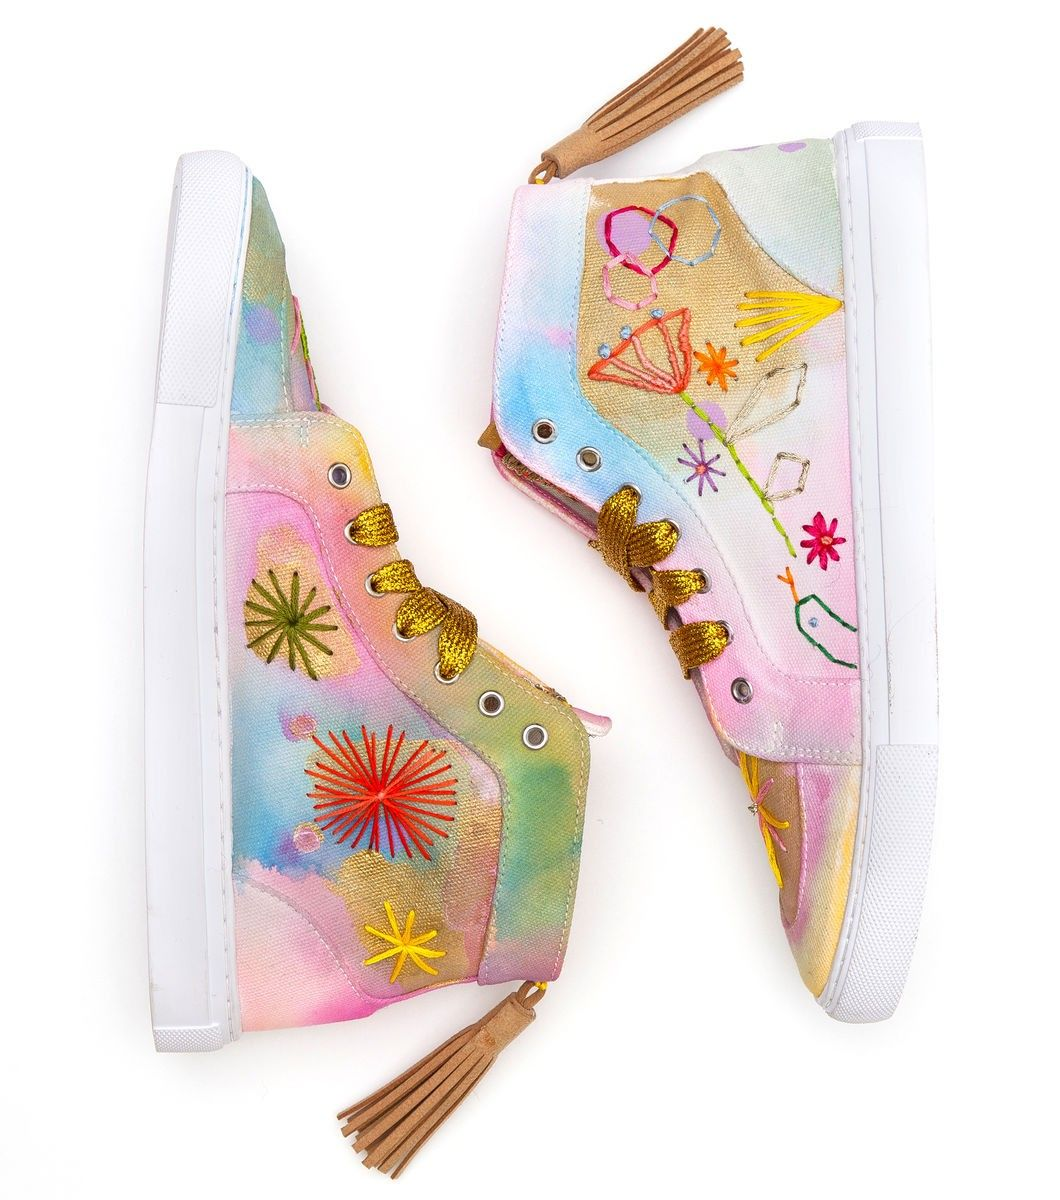 Adventure Sneakers by Madeleine Stamer, One of a kind customized sneakers to be auctioned off with all proceeds going towards kids art therapy school, Little Seeds Big Trees. www.gormanshop.co...